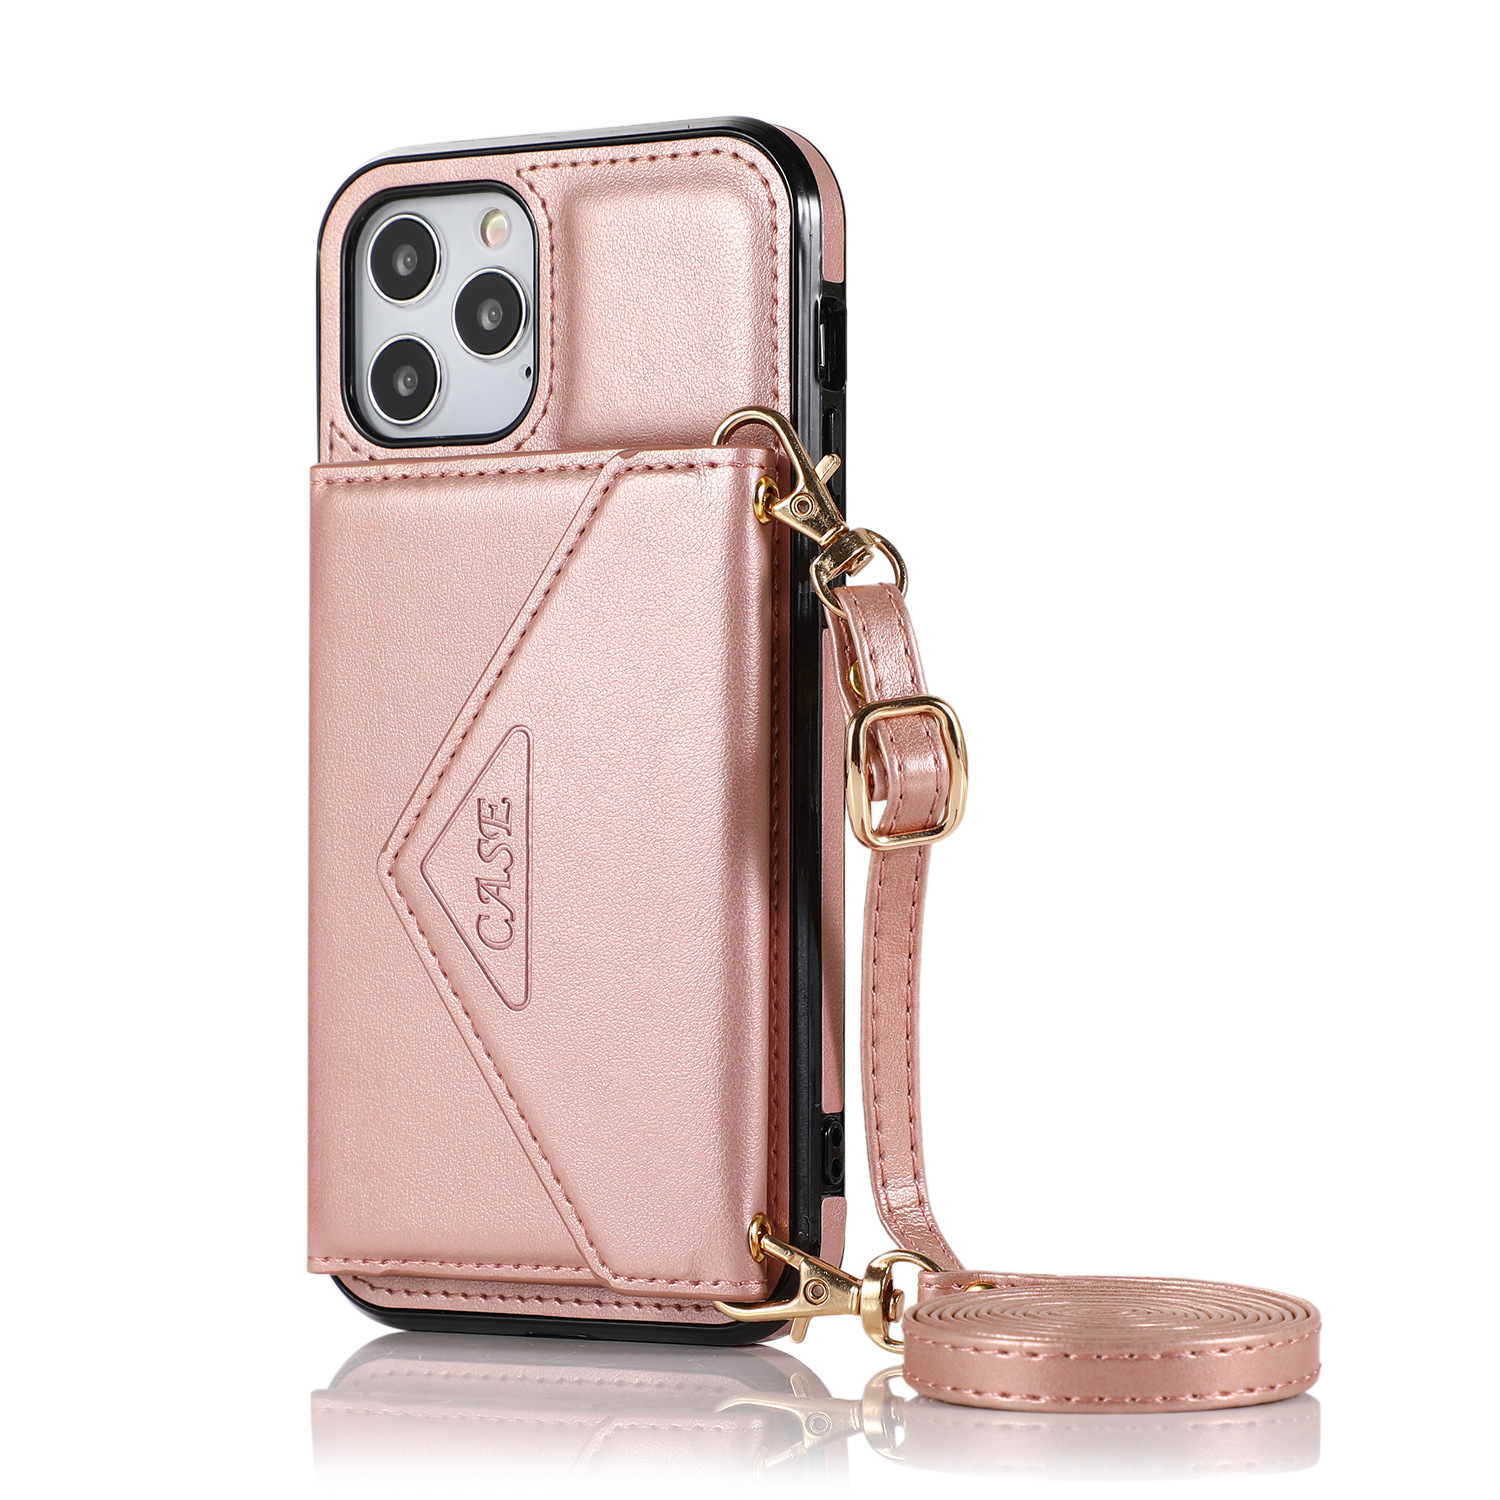 Mobile Phone Case Protective Case Cover For Iphone12/12 Pro Messenger Bag Rose gold